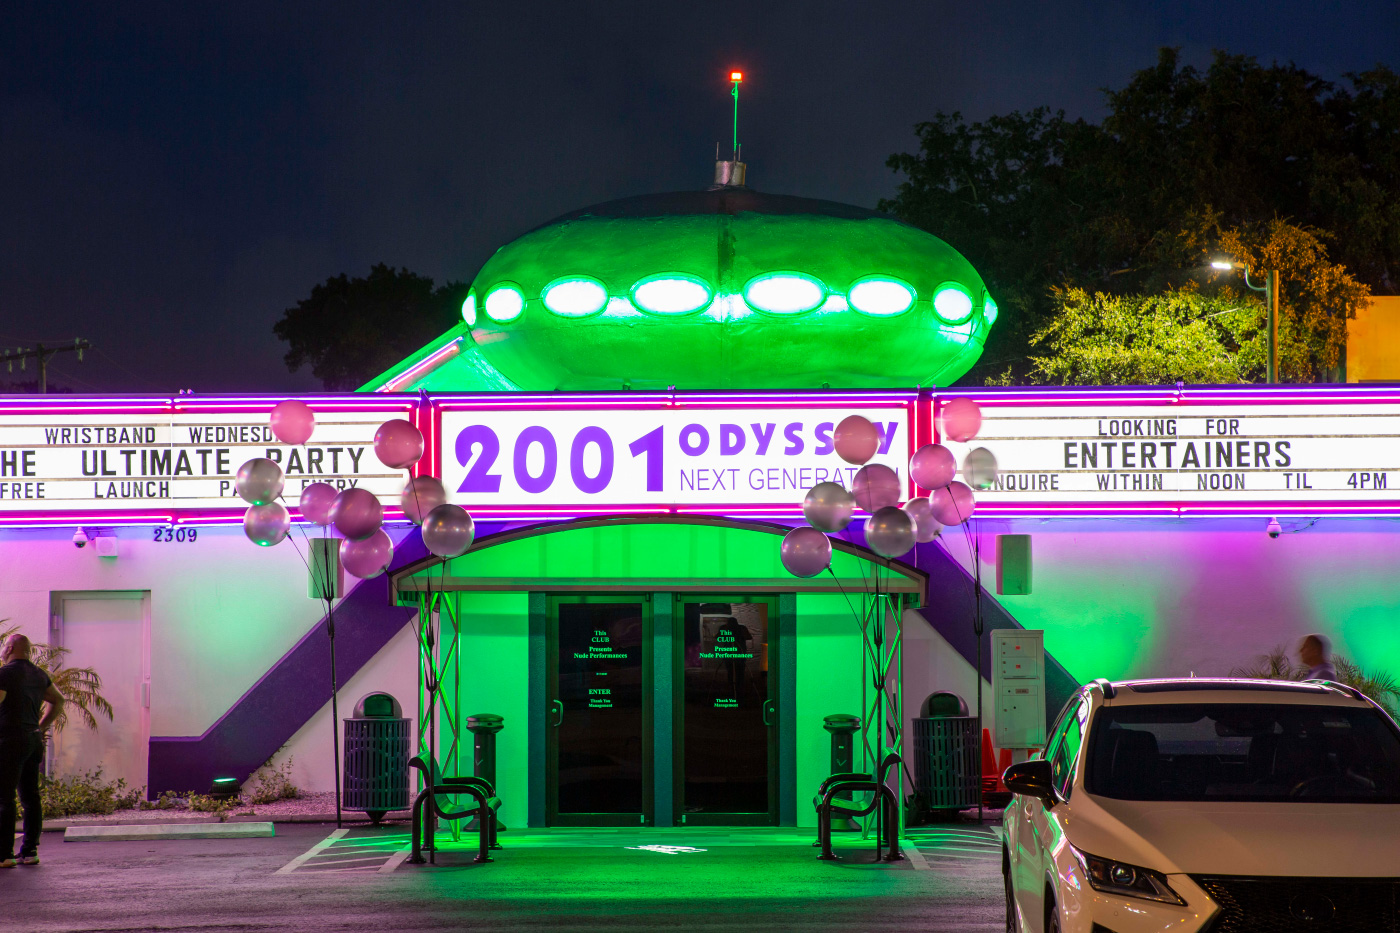 A strip club illuminated by green neon lights with a UFO-like Futuro house on top